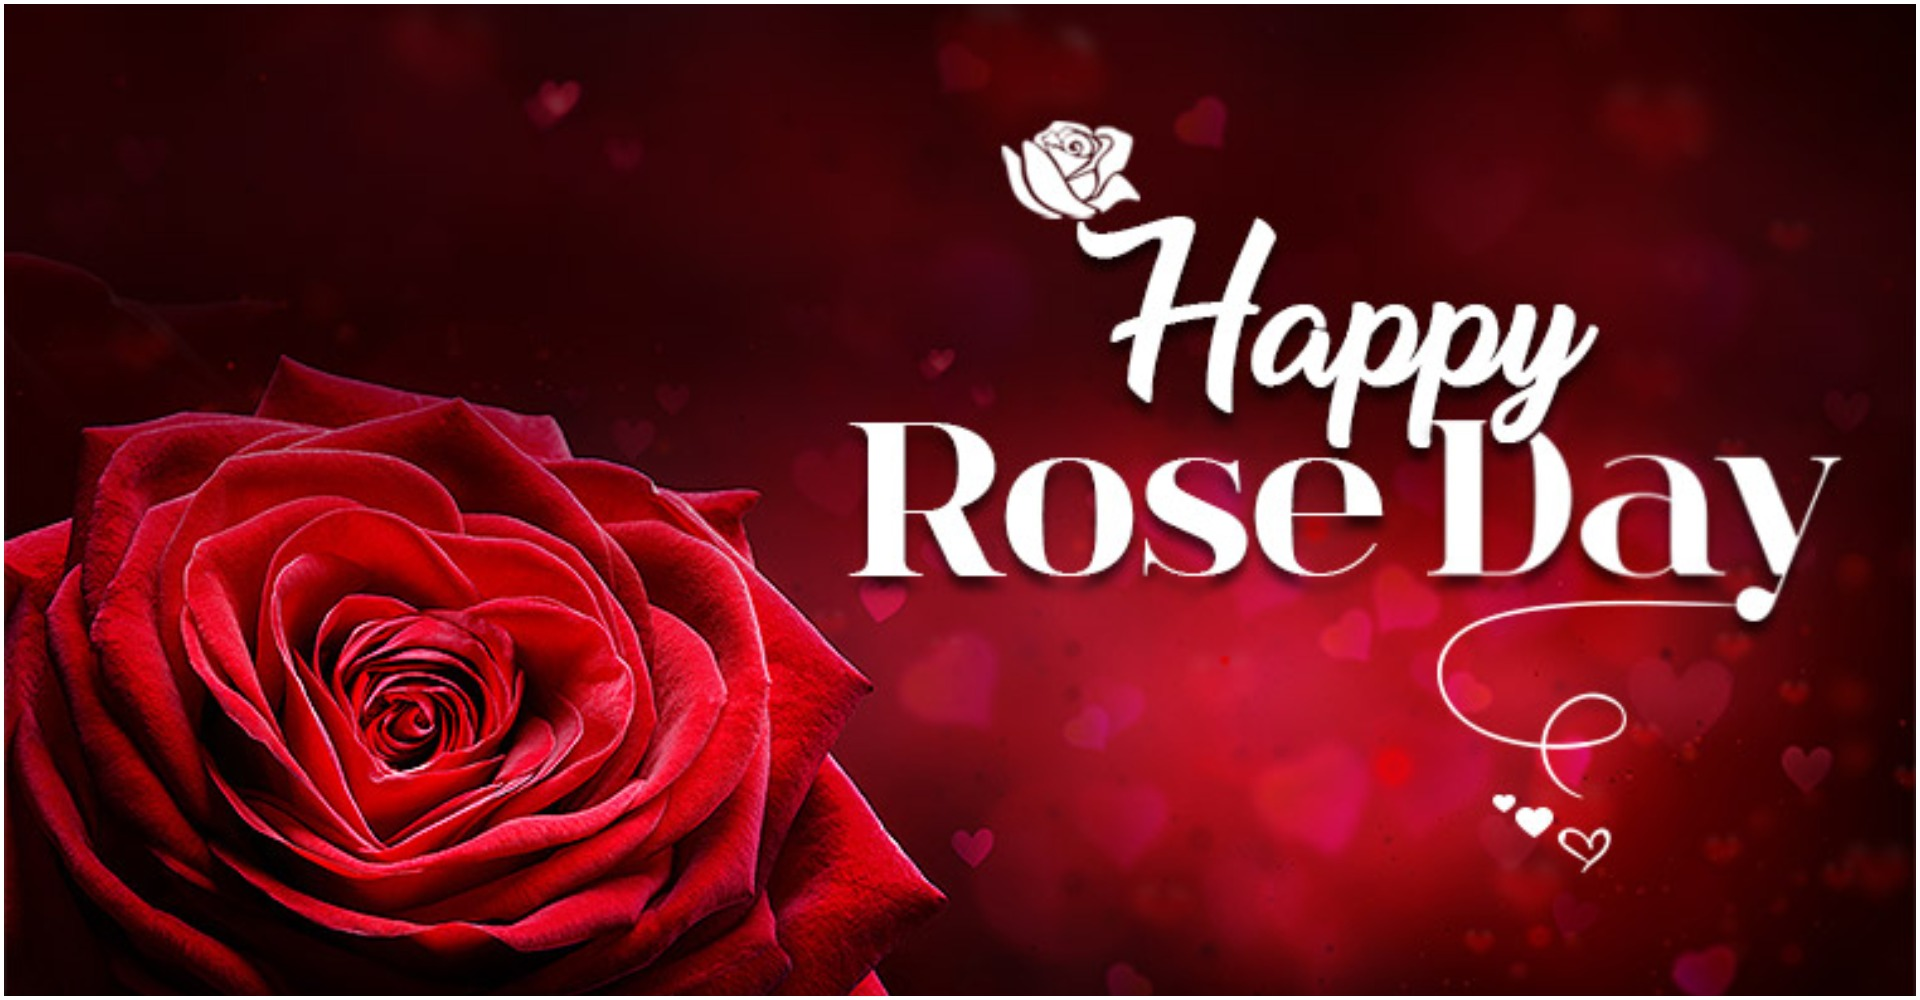 Image result for happy rose day 2020